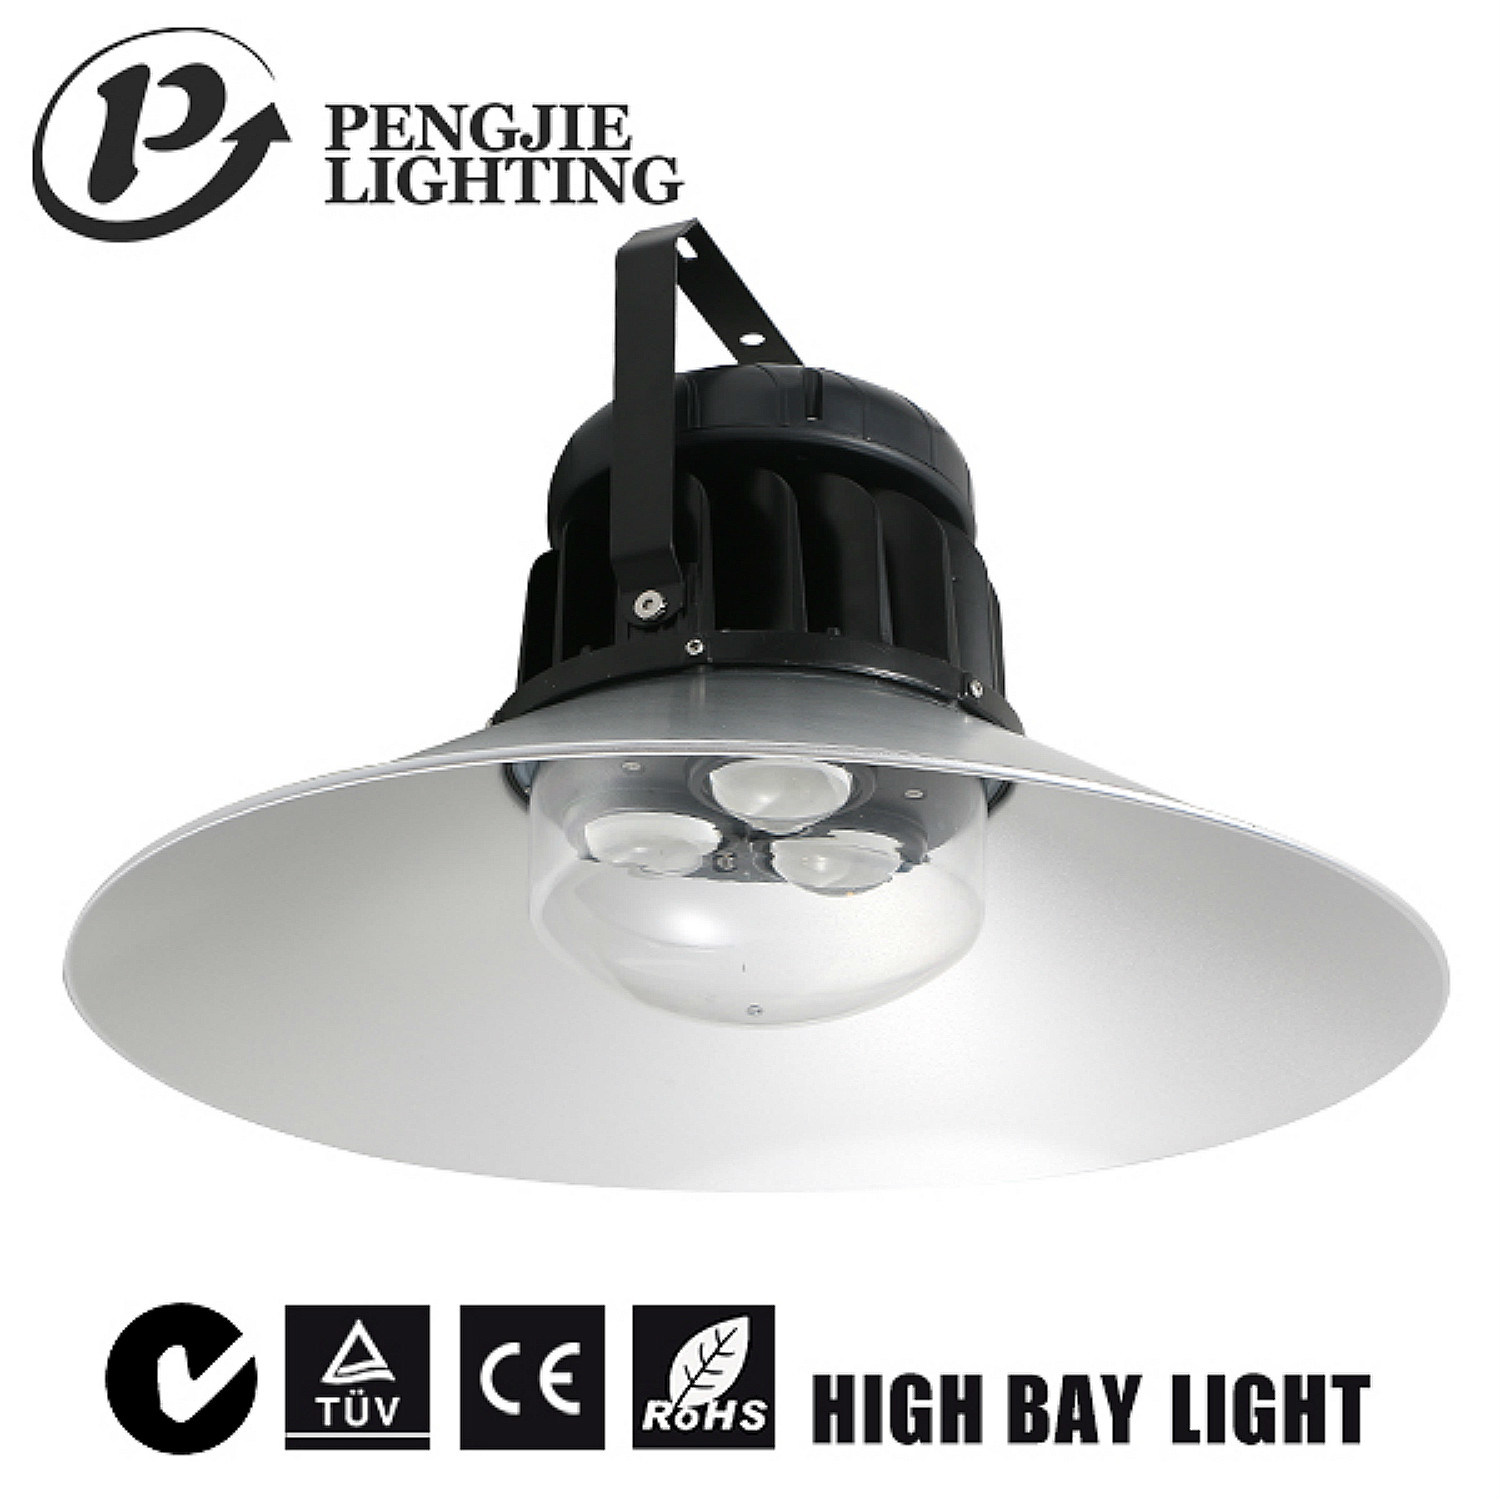 Highlumen Bridgelux Outdoor COB 120W LED High Bay Light